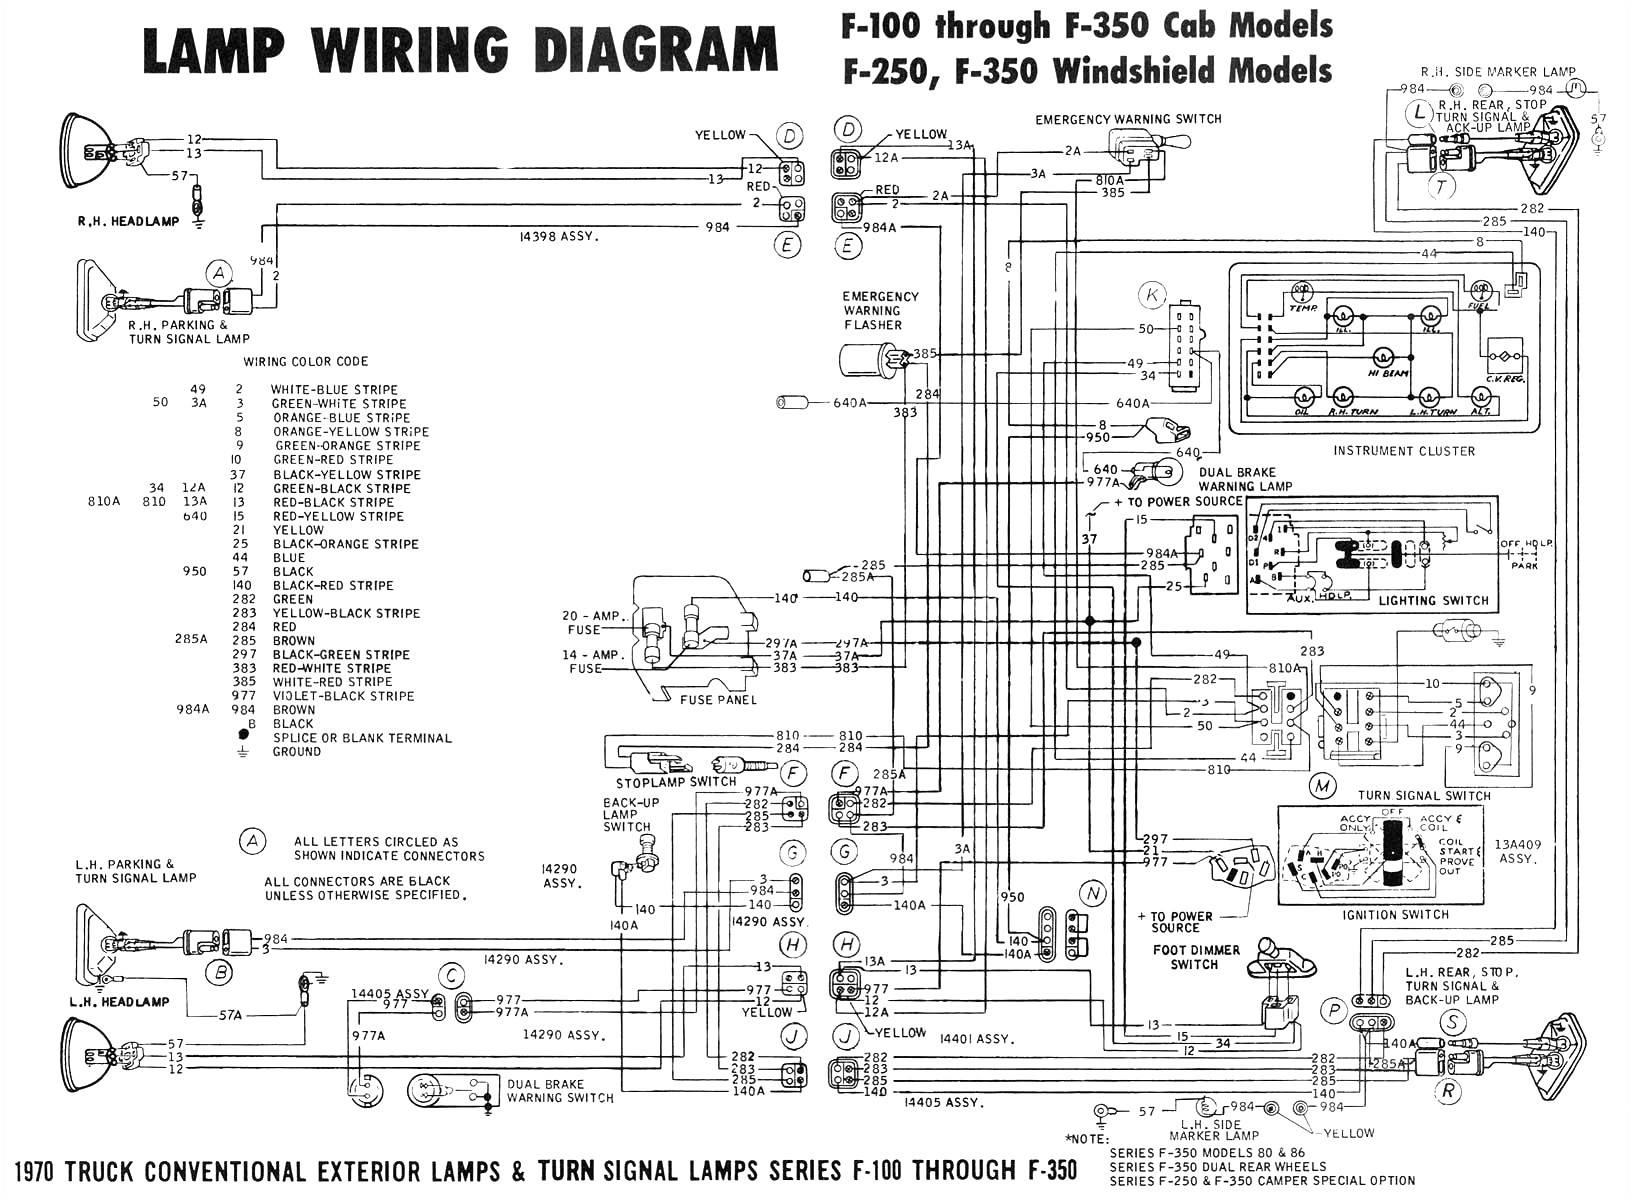 fuse box diagram for a 1990 chevy lumina likewise 1972 chevelle fuse box diagram likewise 2003 chevy impala wiring on astra h